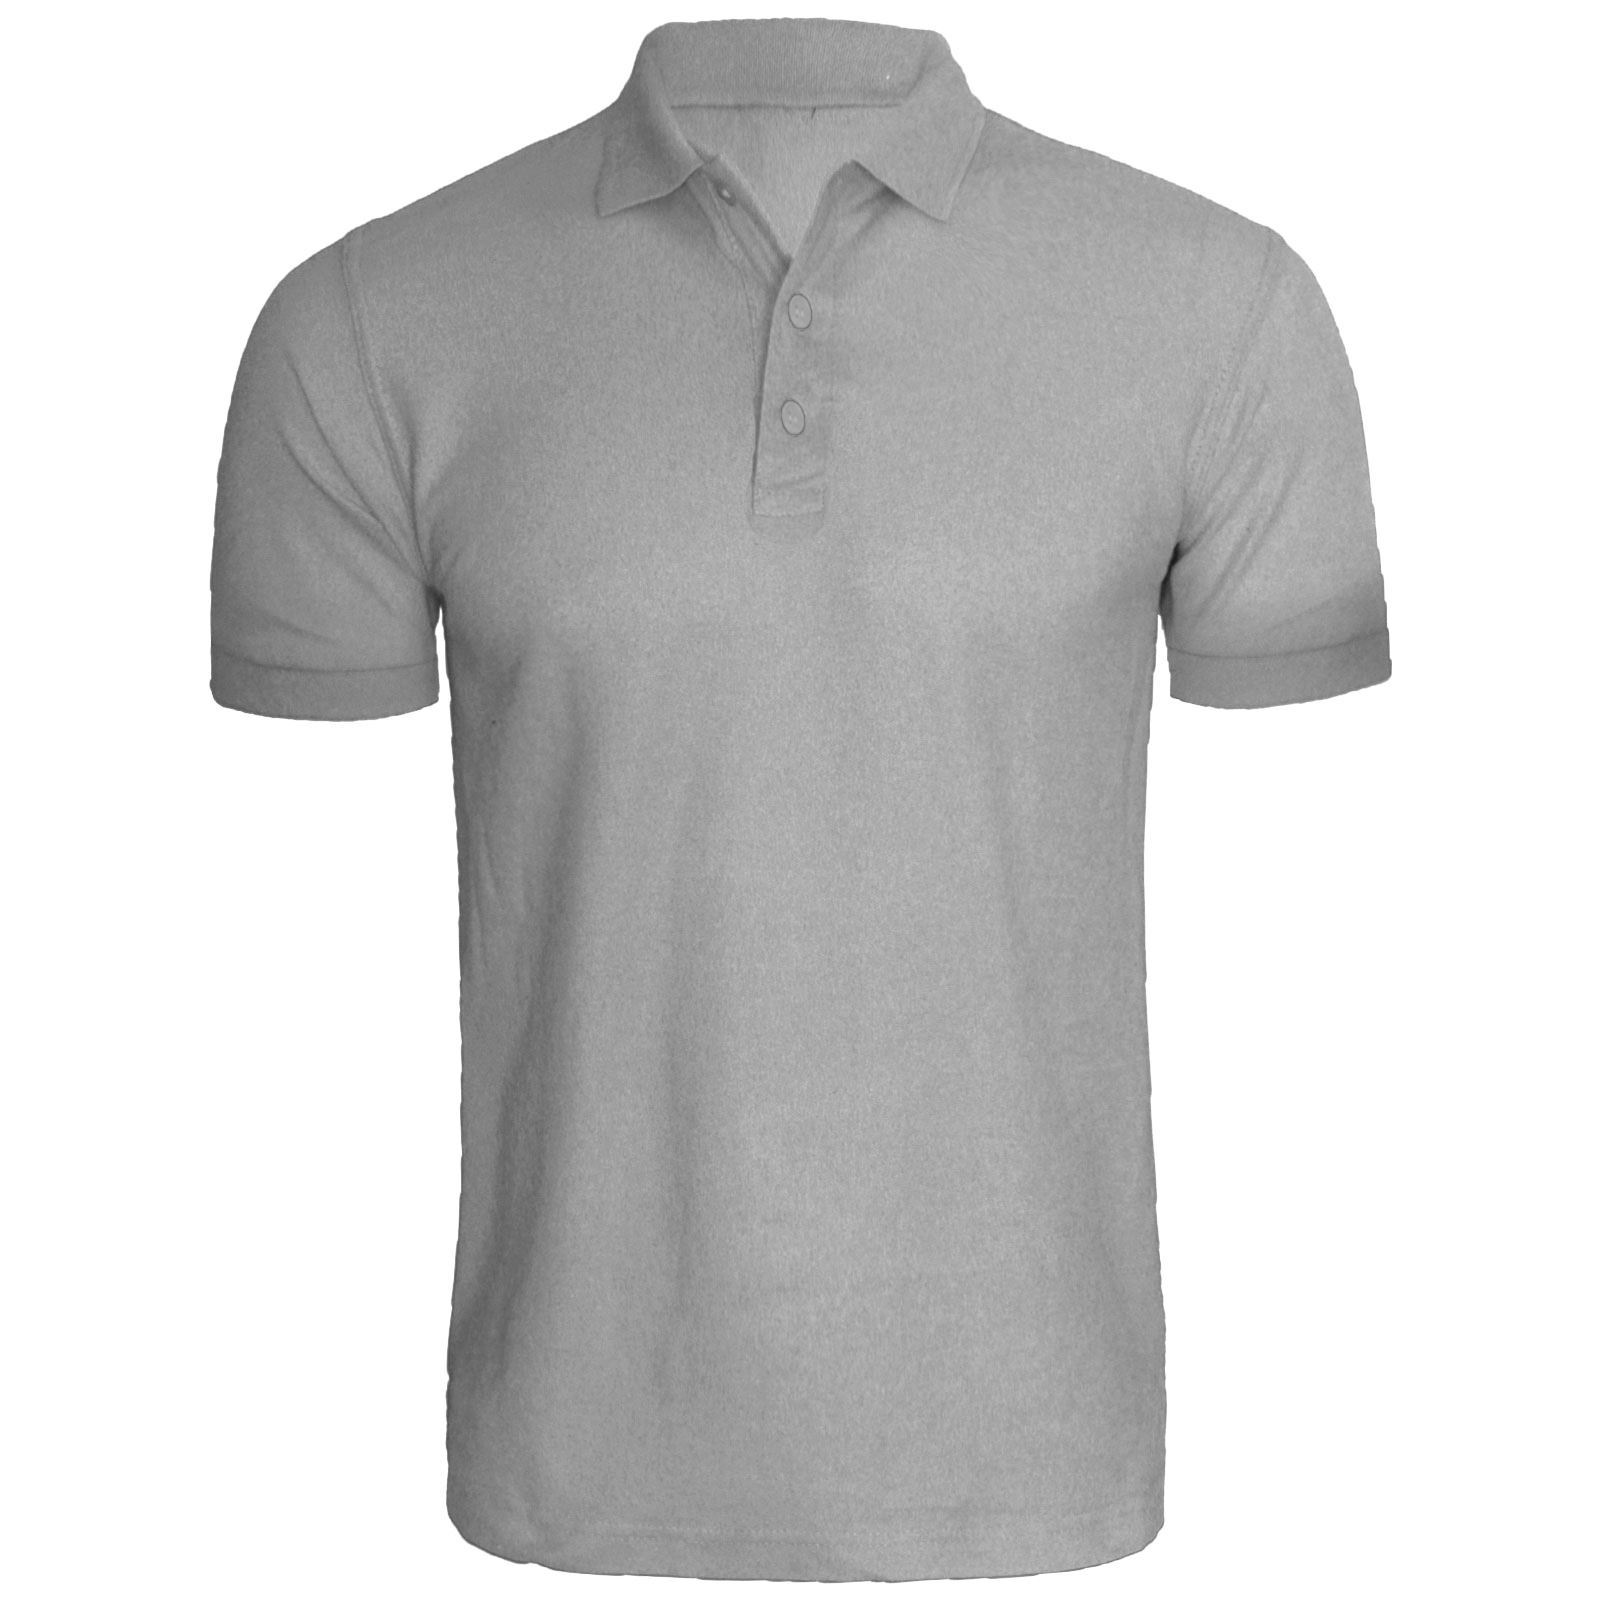 Men 39 s polo shirt mens summer t shirt short sleeve plain Man in polo shirt